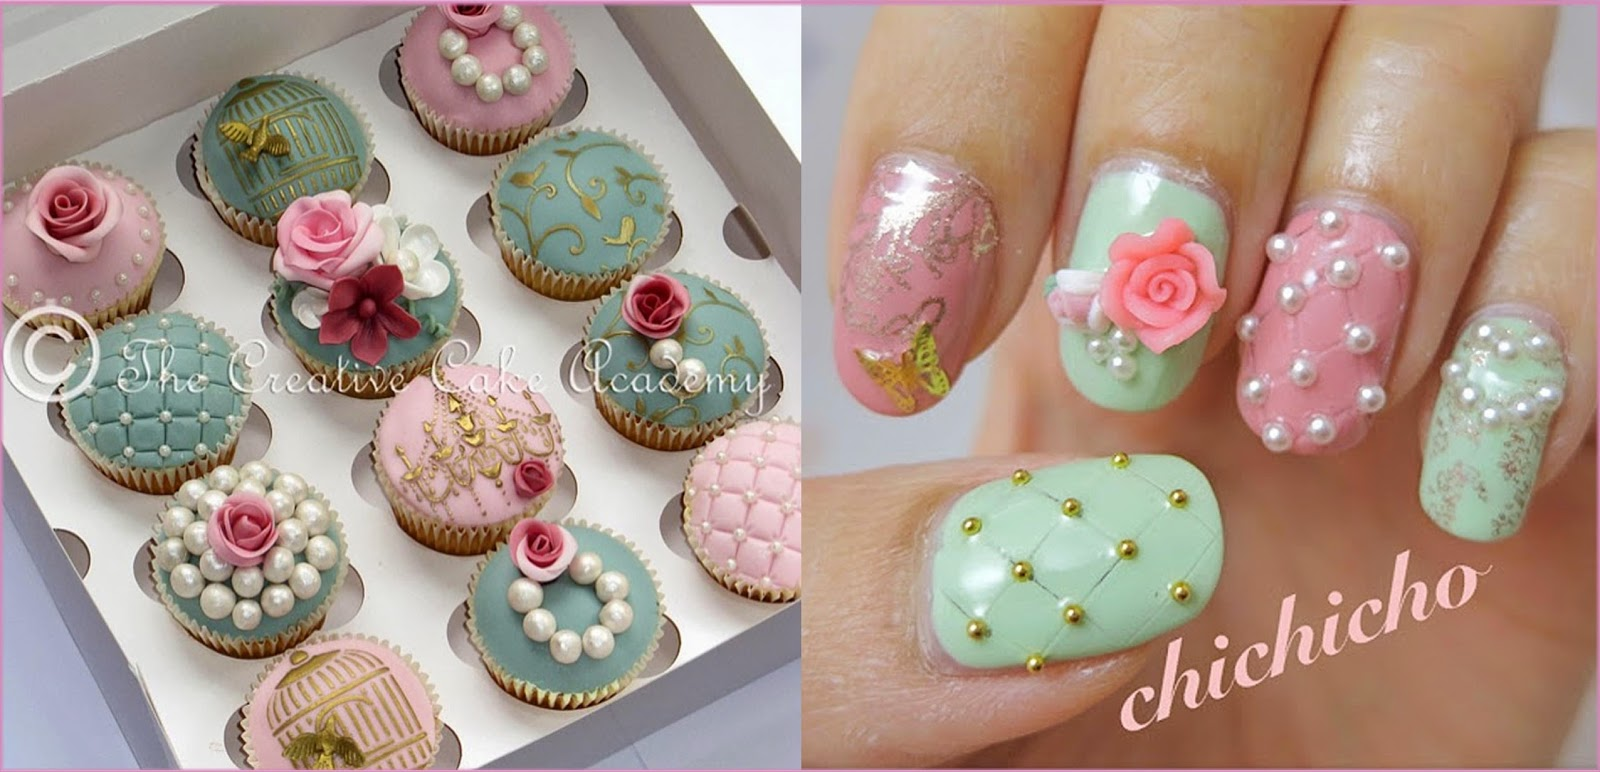 The creative cake academy vintage cupcakes and nail art design vintage cupcakes and nail art design prinsesfo Gallery